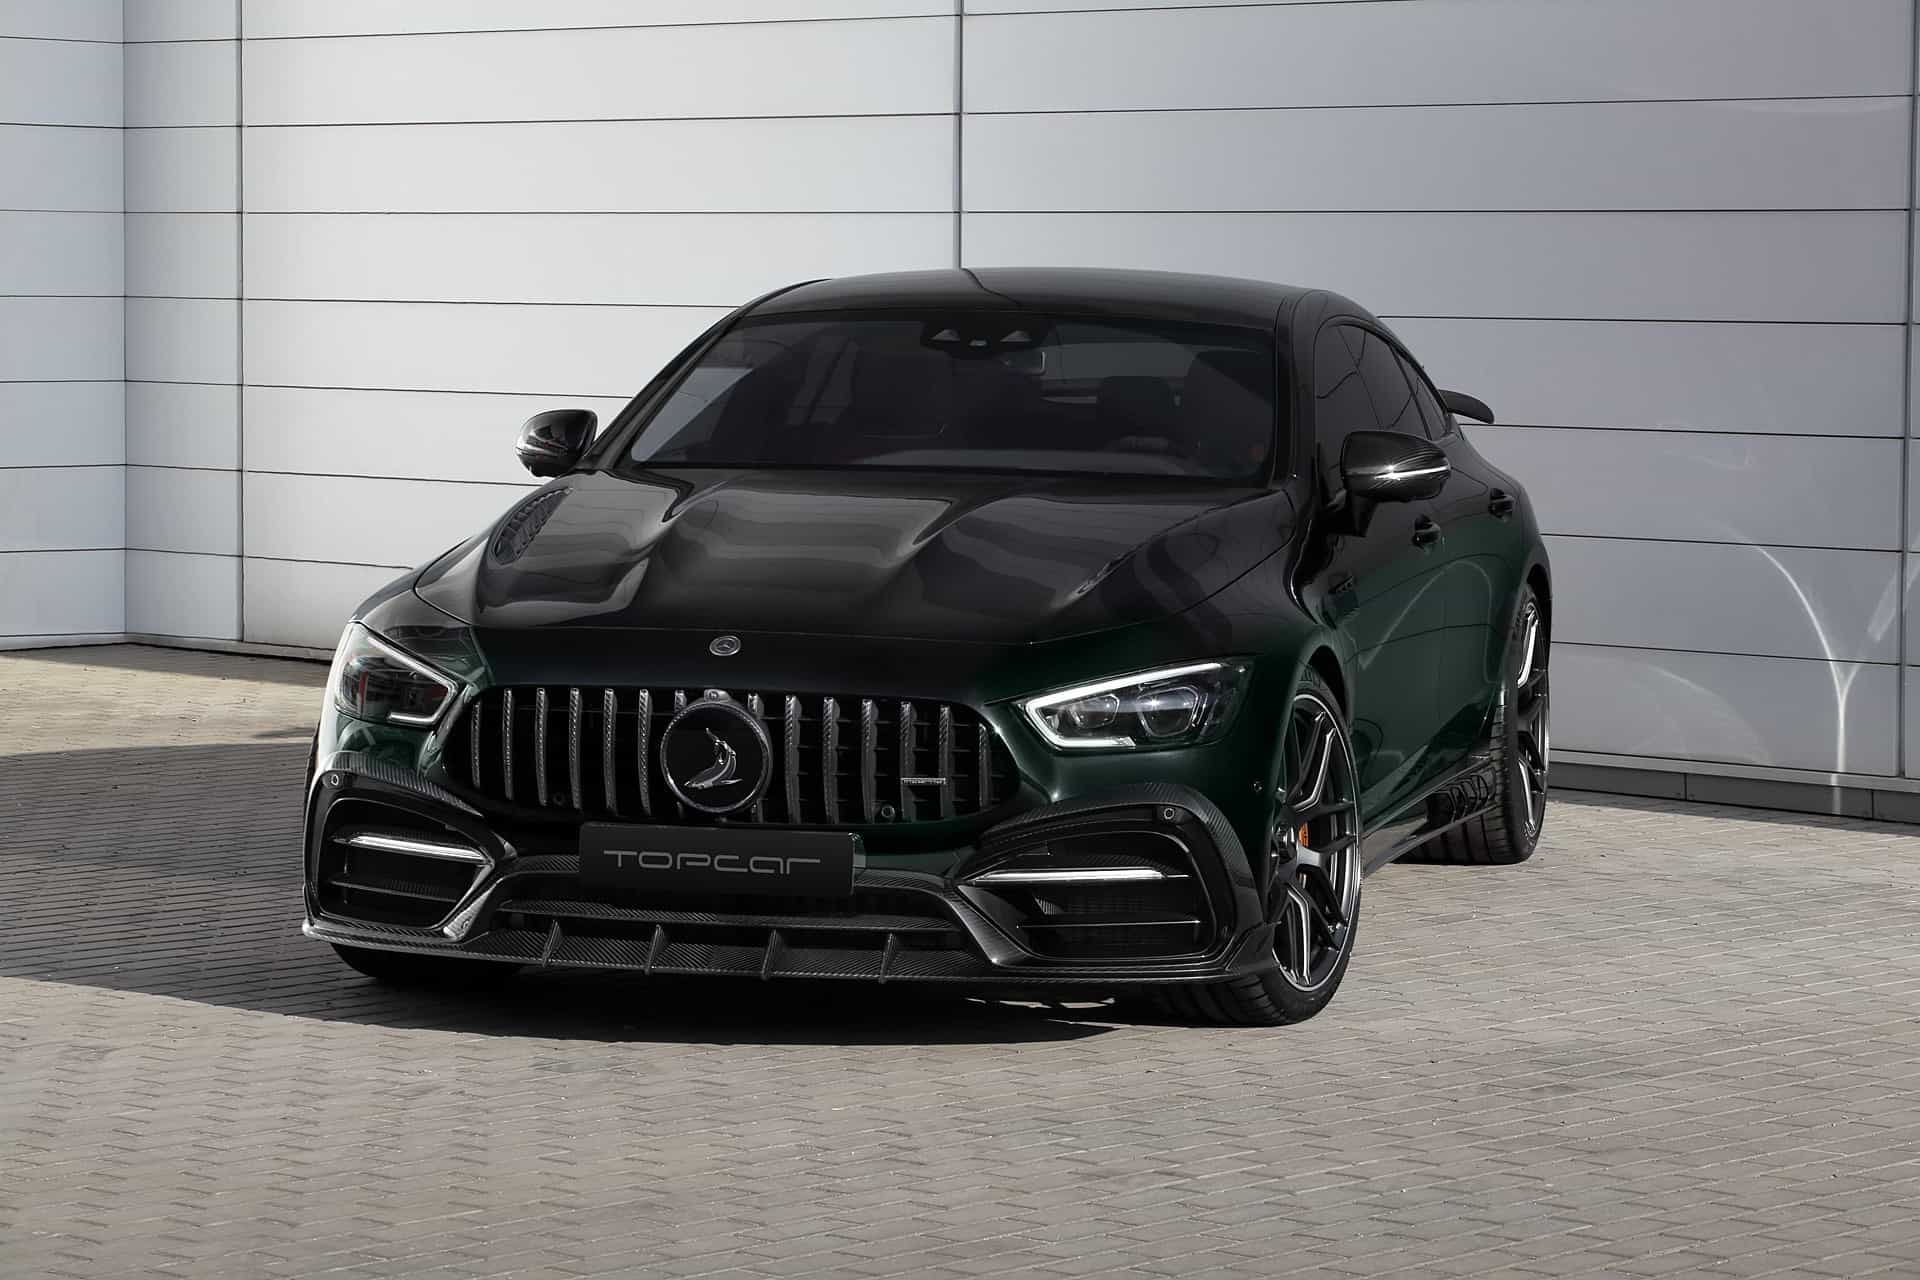 TOPCAR Releases Body Kit for Mercedes-AMG GT 4-door Coupe